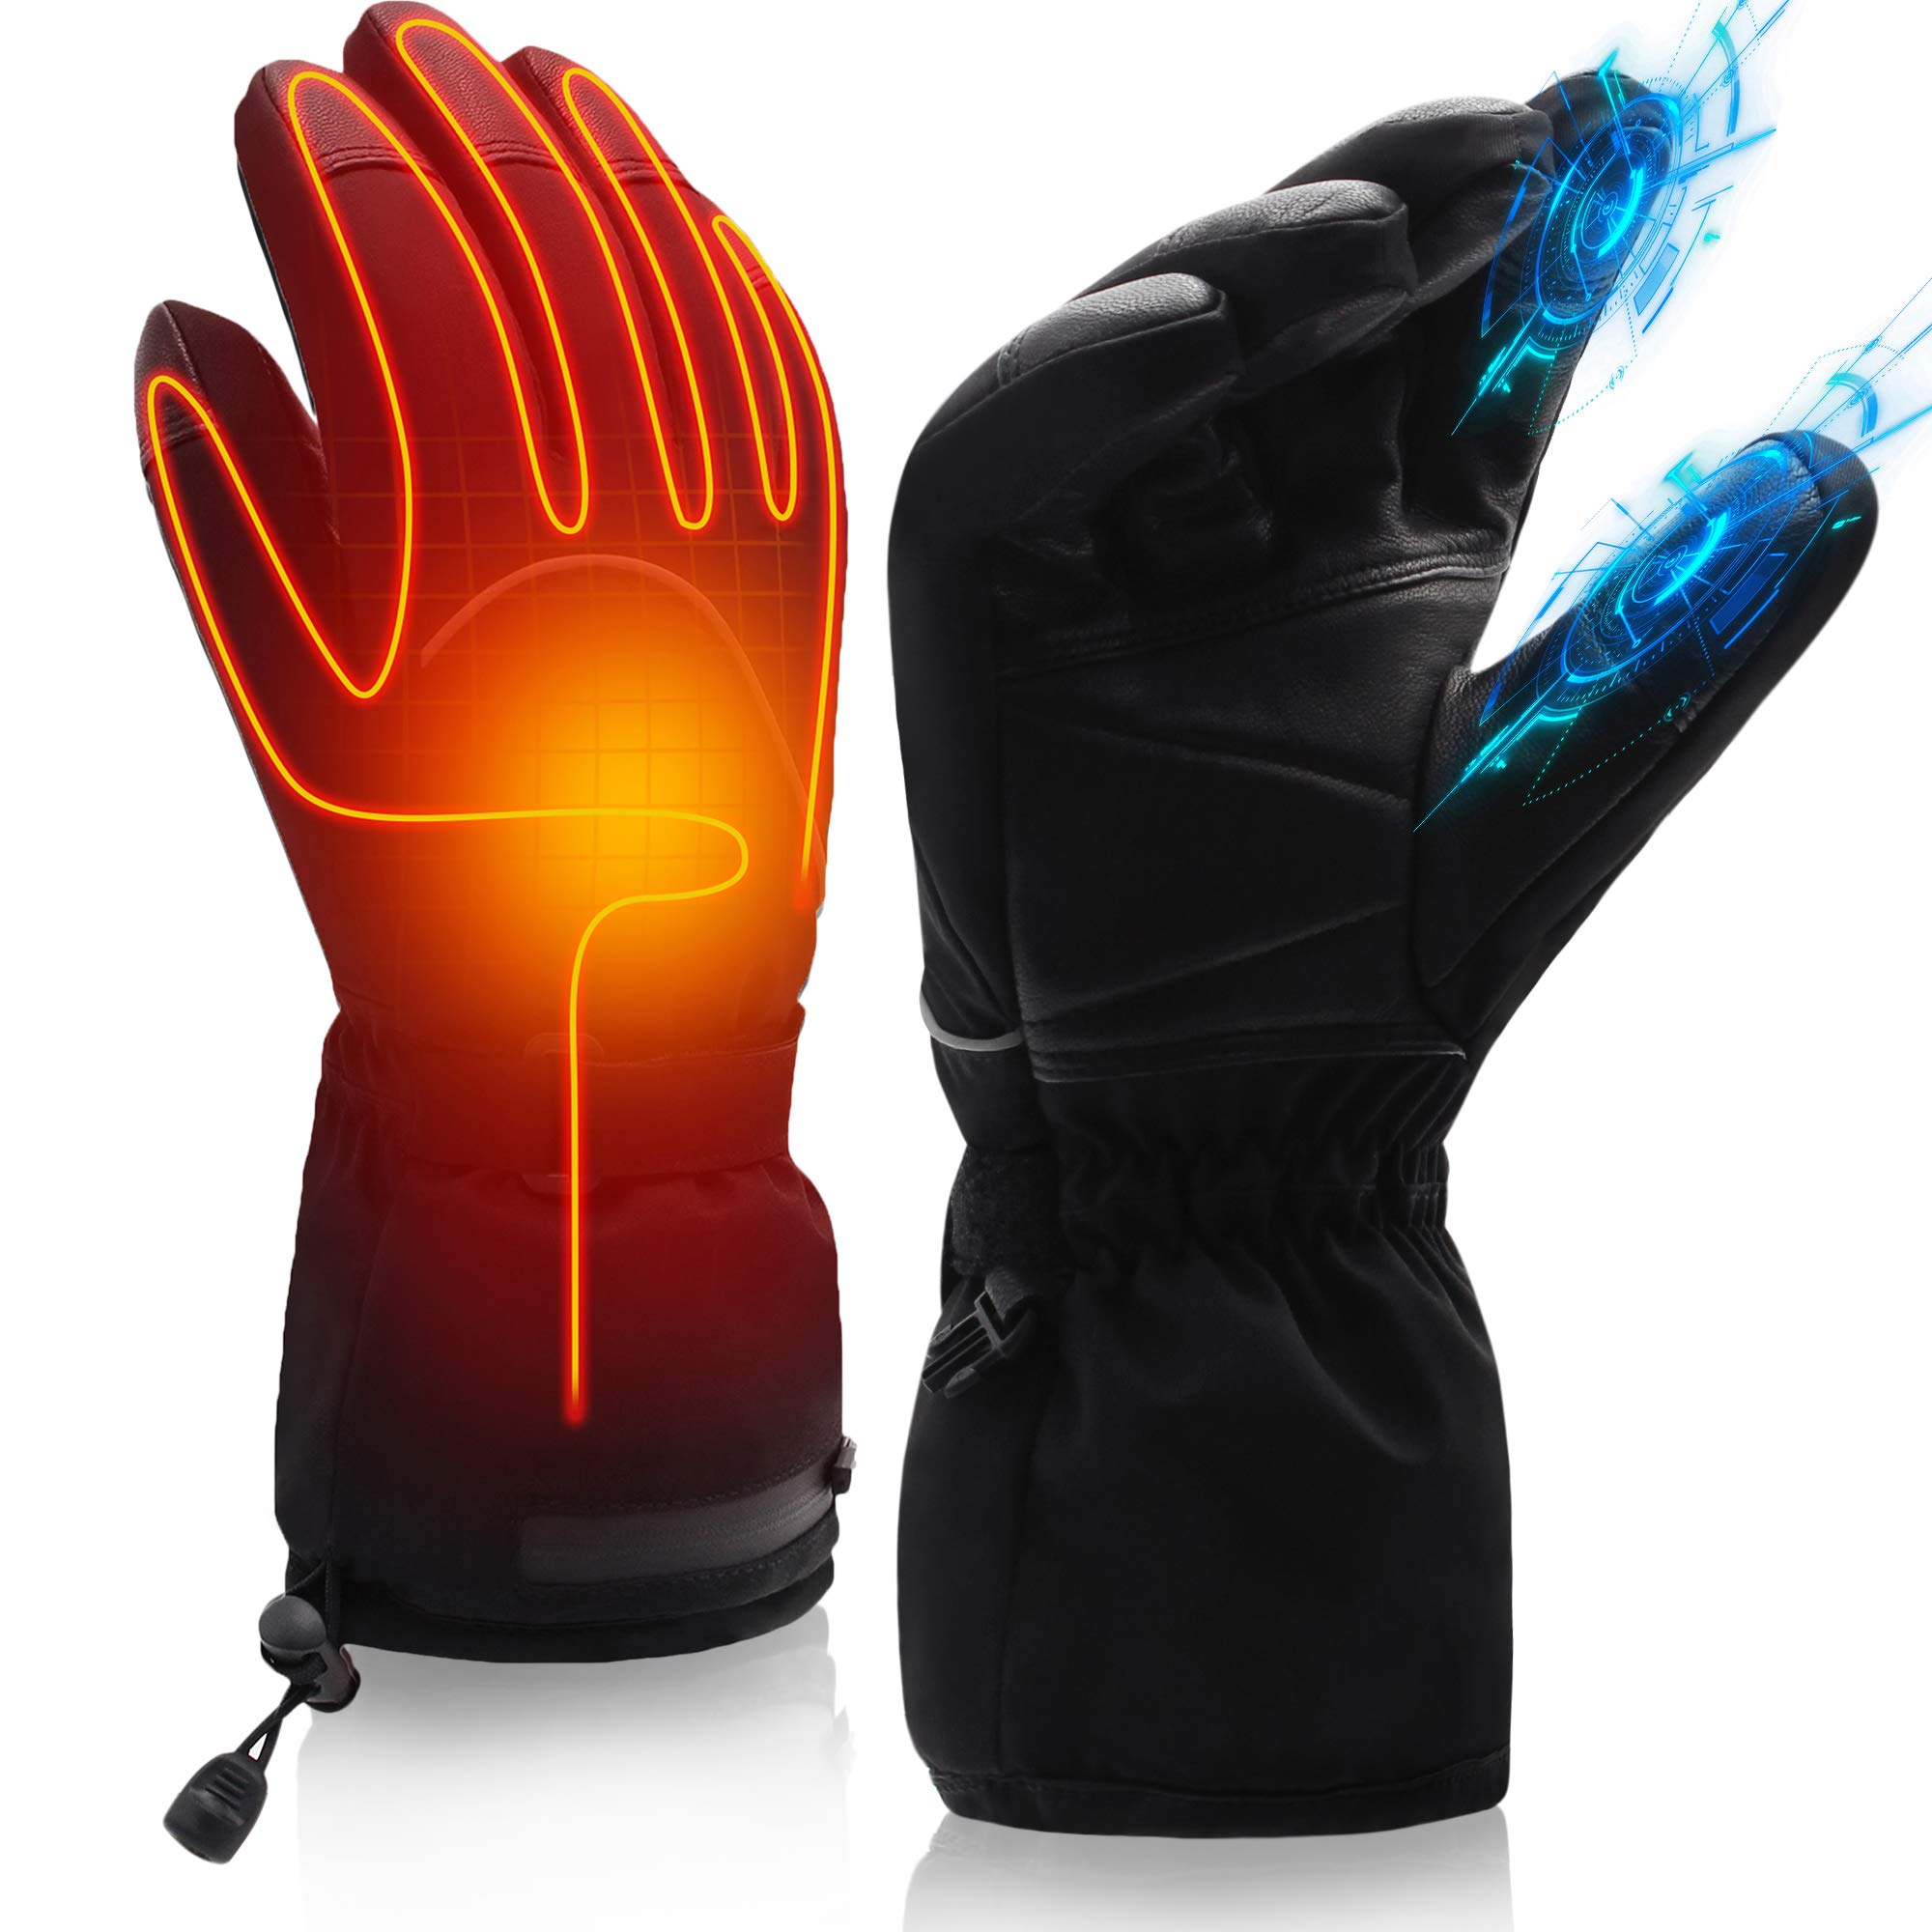 SVPRO Heated Gloves Men Women Electric Rechargeable Battery Heating Gloves Mitten Warm Winter Hunt Fish Cycle Motorcycle Drive Camp Ski Hike Motorcycle Thermal Hand Warmer (19New 7.4V Gloves-XL) by SVPRO